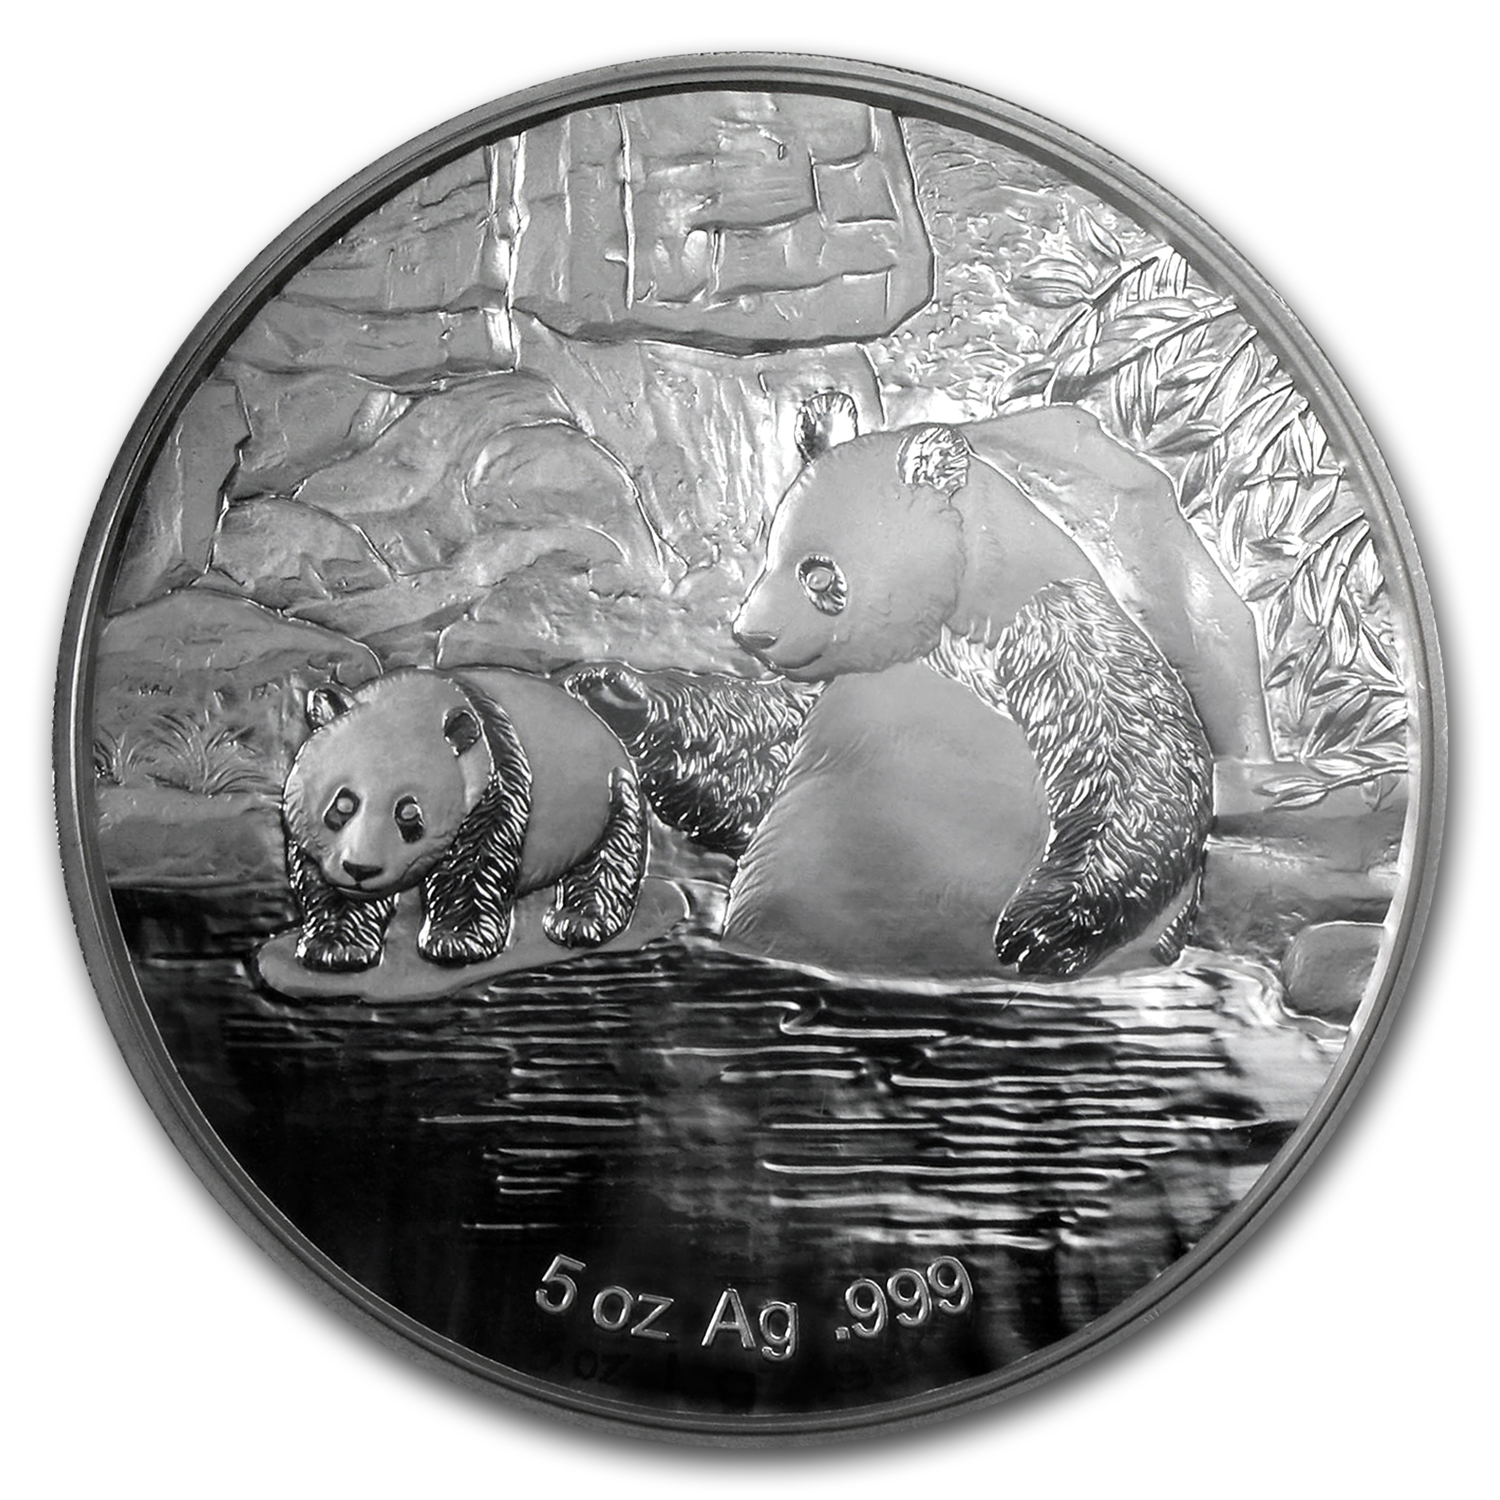 2015 China 5 oz Silver Panda 60th Anniversary FUN Coin Show Medal